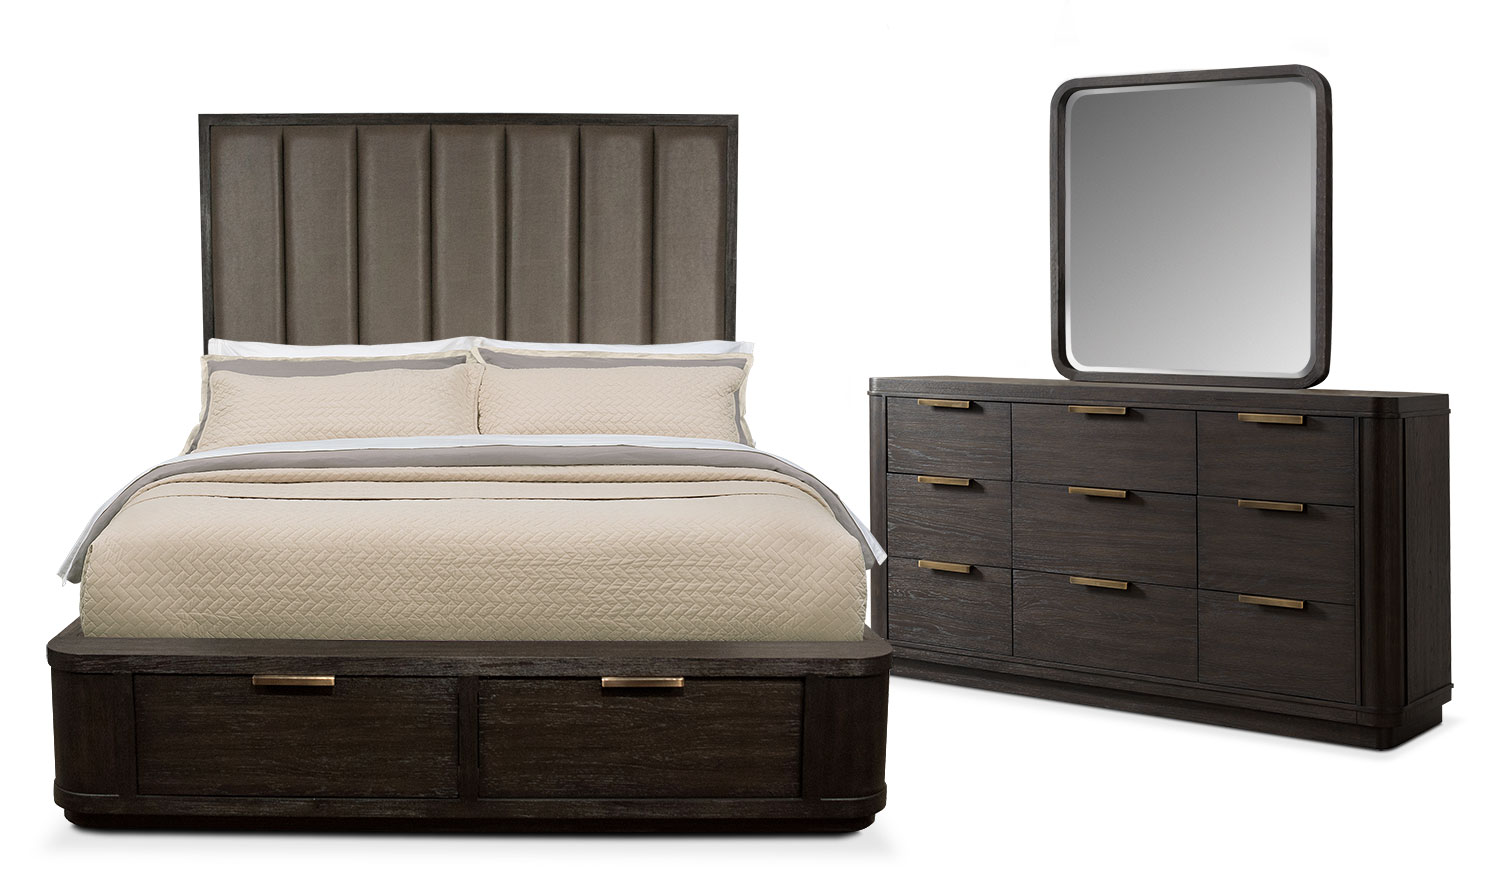 Bedroom Furniture - Malibu 5-Piece King Tall Upholstered Storage Bedroom Set - Umber